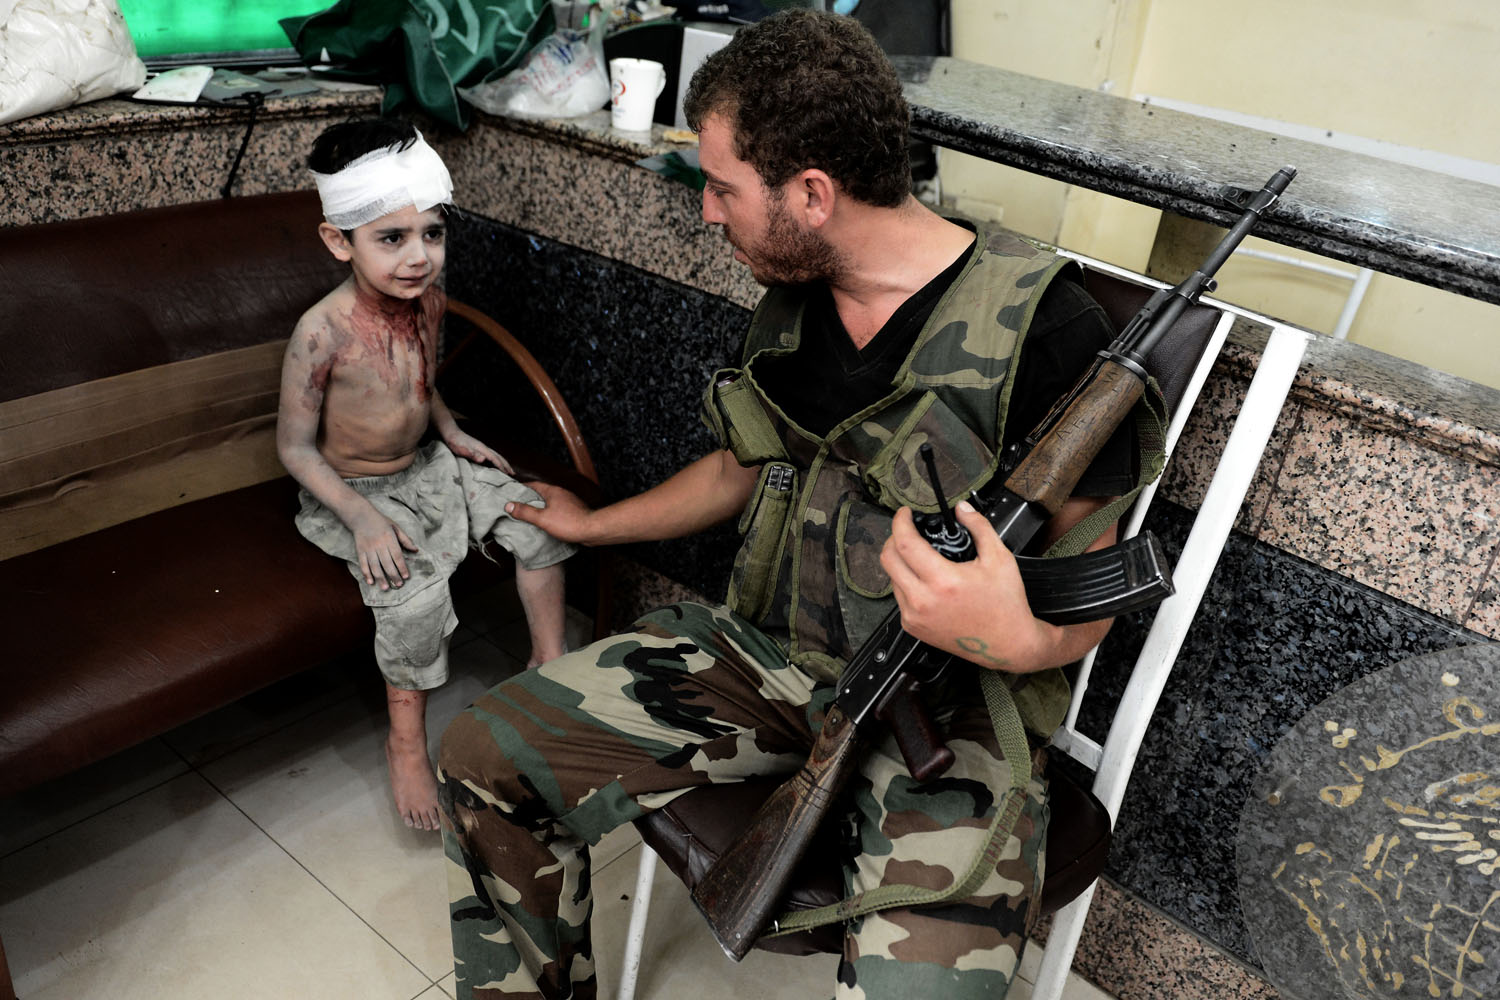 Aris Messinis                                An FSA fighter tries to calm down a wounded child after his house, which was about 100 meters from the hospital, was hit by a helicopter's rocket. The boy was carried to the hospital by neighbors and, after the first treatment, was moved to the reception area. With dozens of civilian casualties that afternoon by air strikes, many of them children in worse conditions, the hospital was running out of space. The boy was standing there alone, so the fighter stayed with the boy until other members of his family arrived at the hospital to pick him up.                                                              Covering the impact of war on nonfighting civilians — receiving the consequences of it without even participating — is of a much greater importance than the proper war-news coverage. When there are people experiencing these situations, the least you can do is inform the world about these changes on their lives and present realities — changes that could be unimaginable to others.